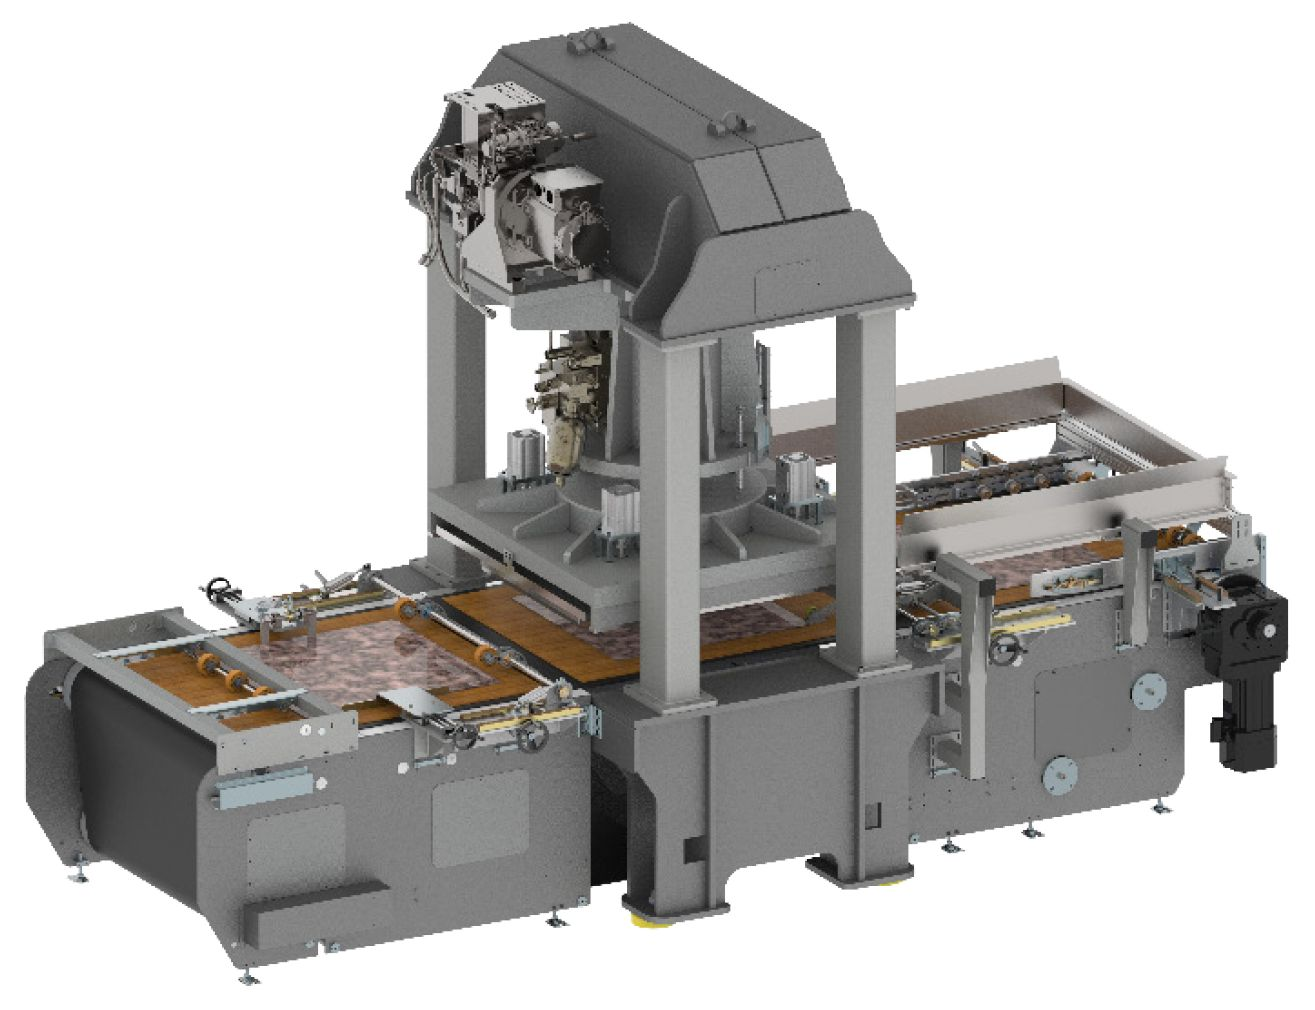 schoen+sandt die-cutting machine for the production of LVT